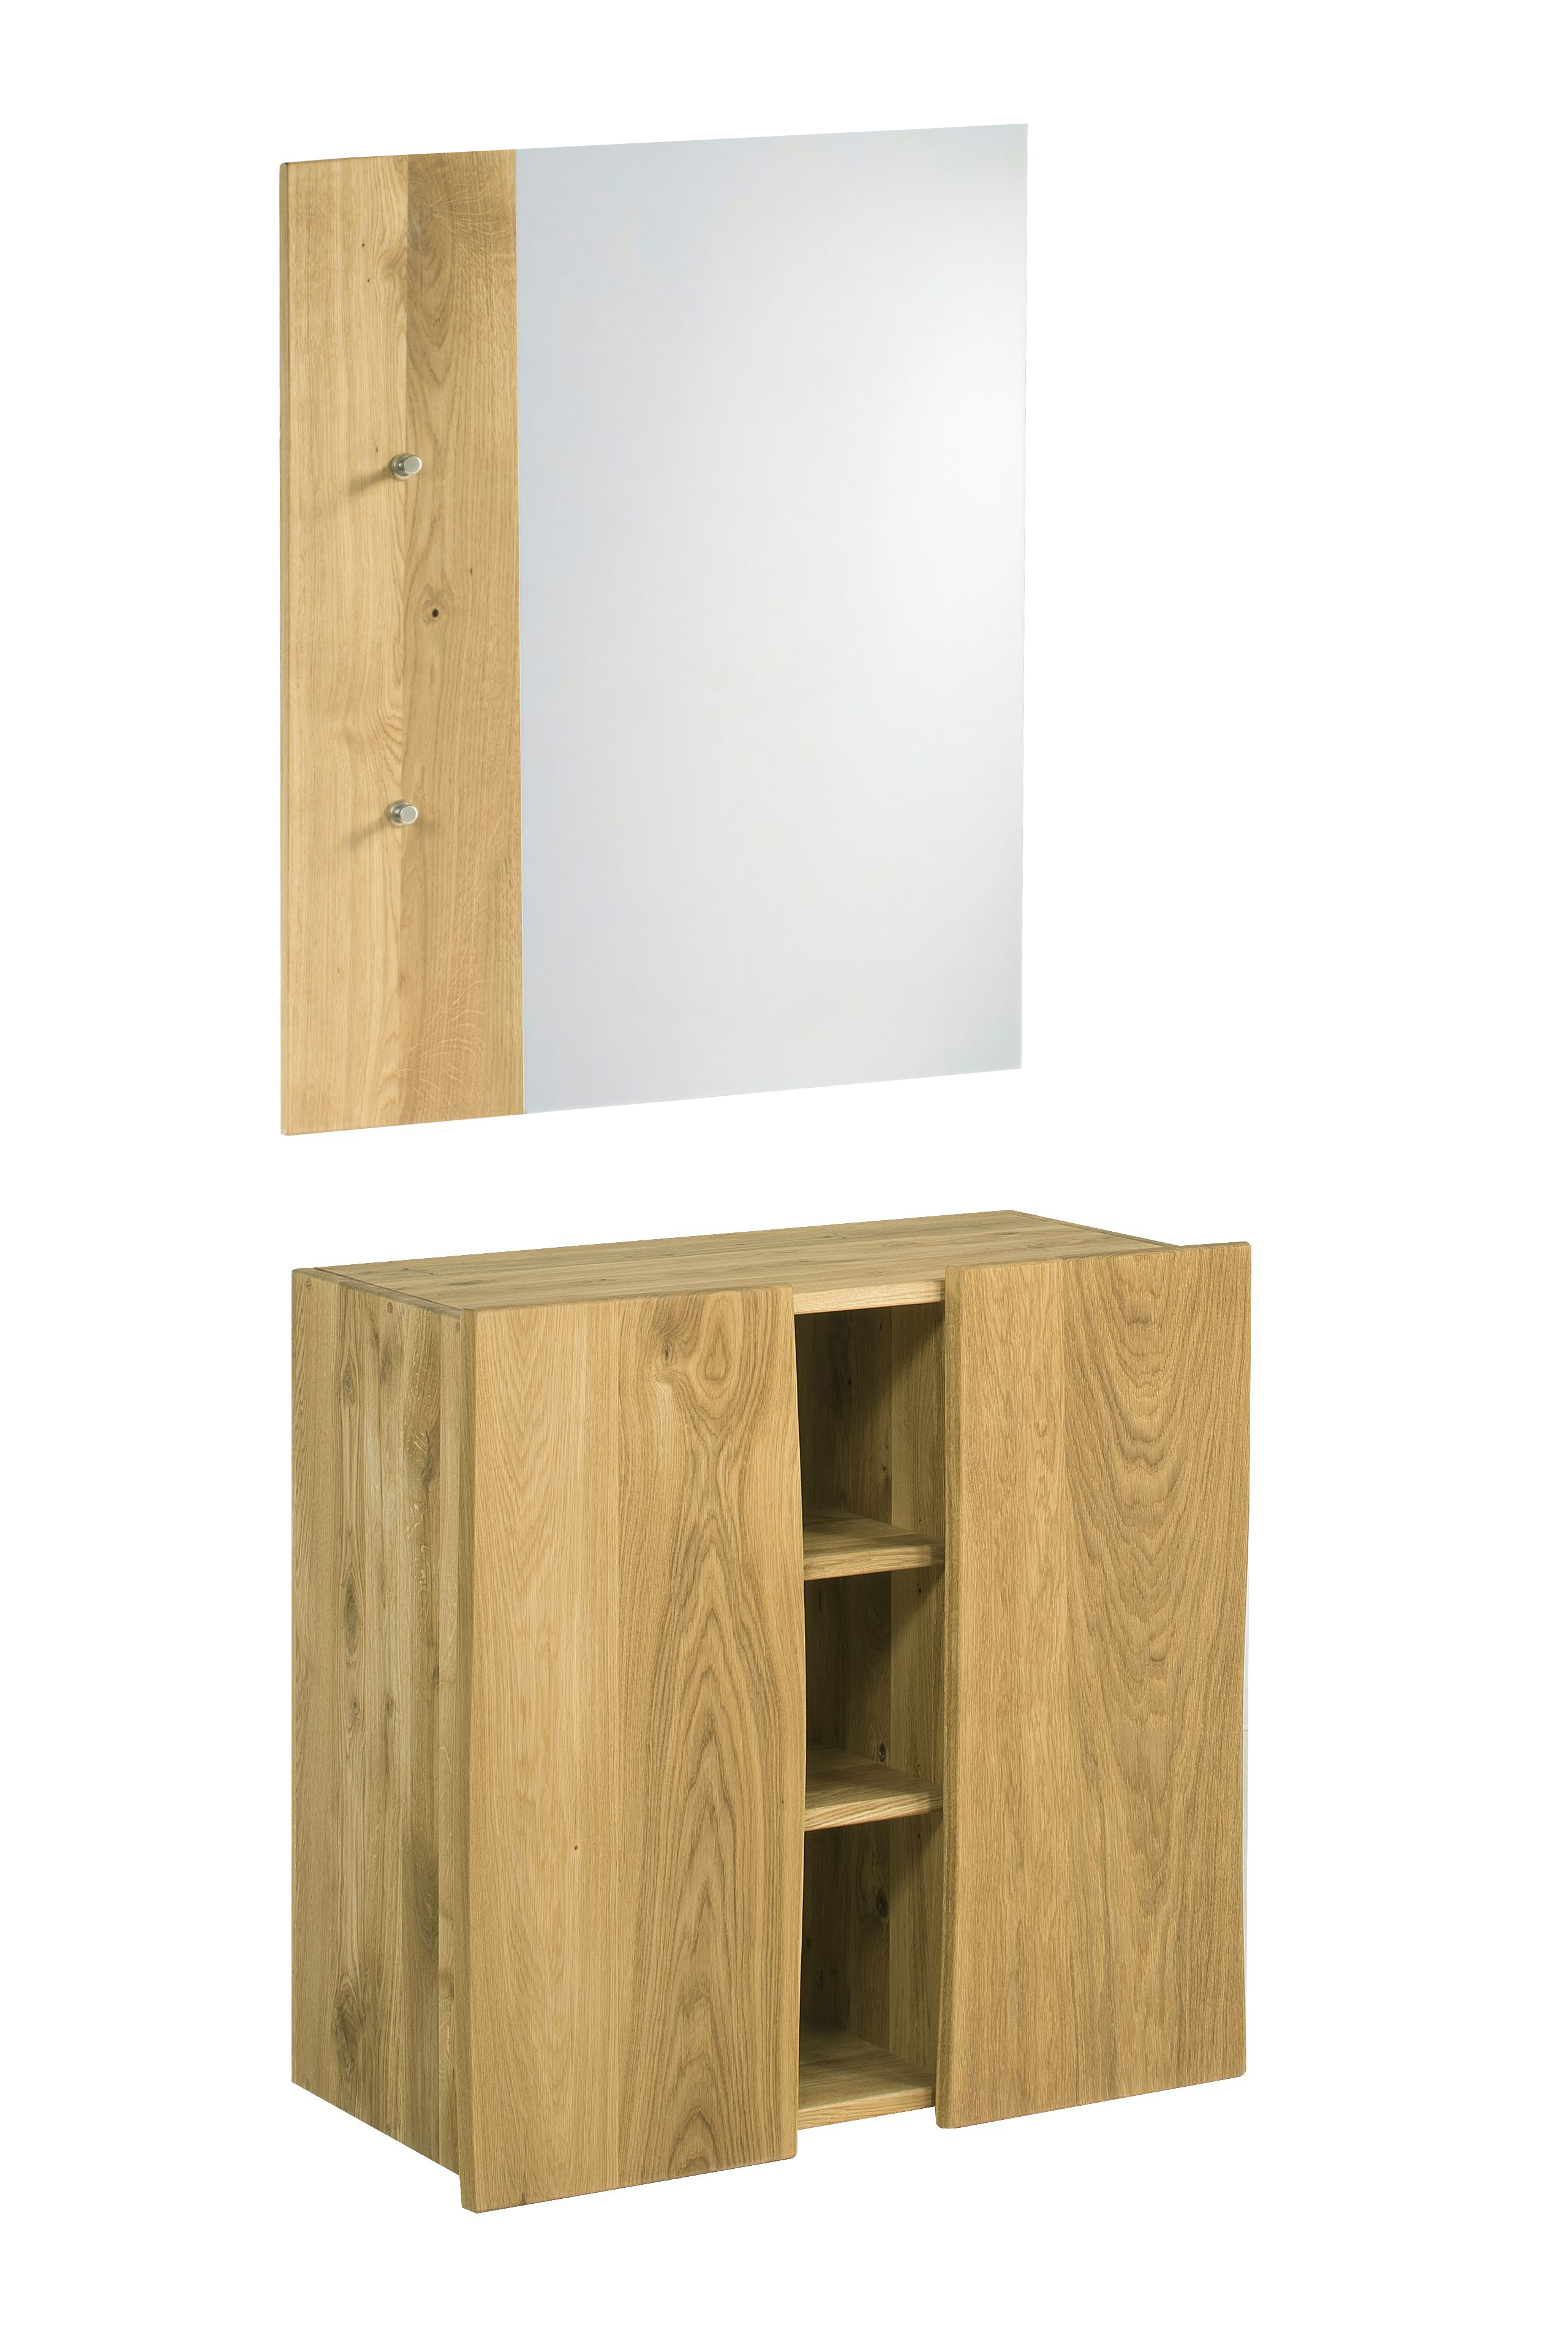 garderobe woodline aus eiche skalik meble m bel letz ihr online shop. Black Bedroom Furniture Sets. Home Design Ideas